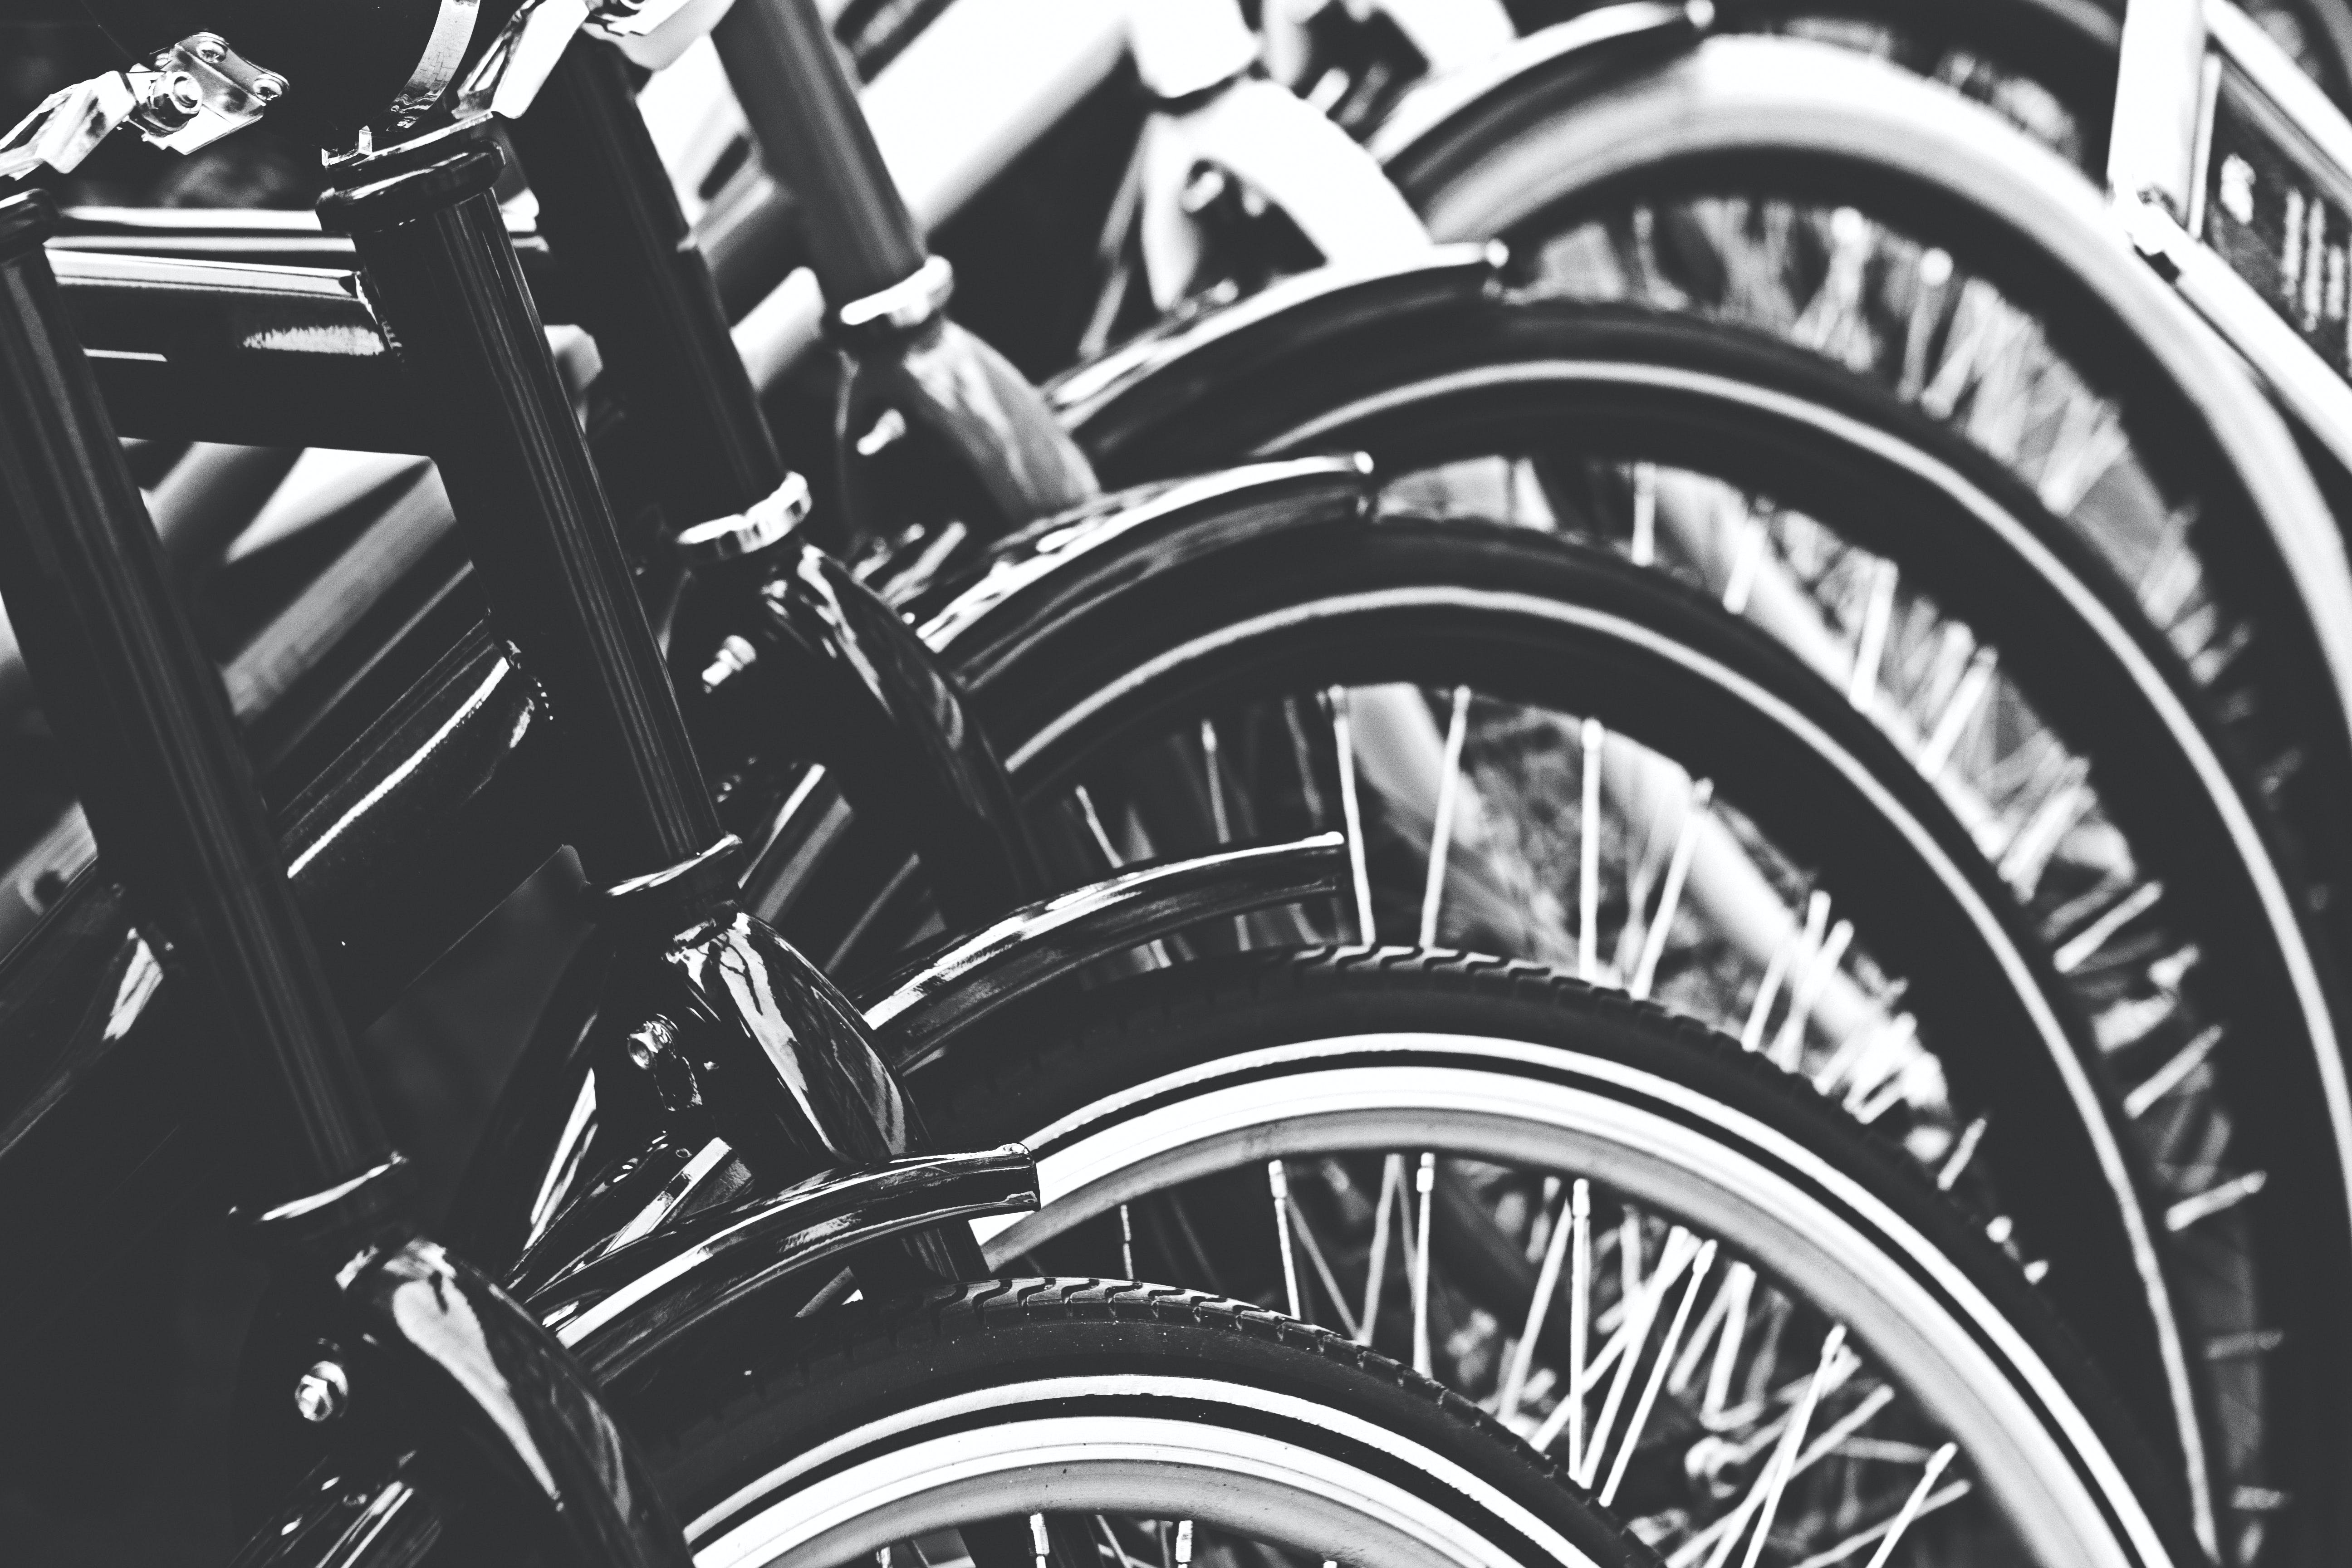 Grayscale Photography of Bicycle